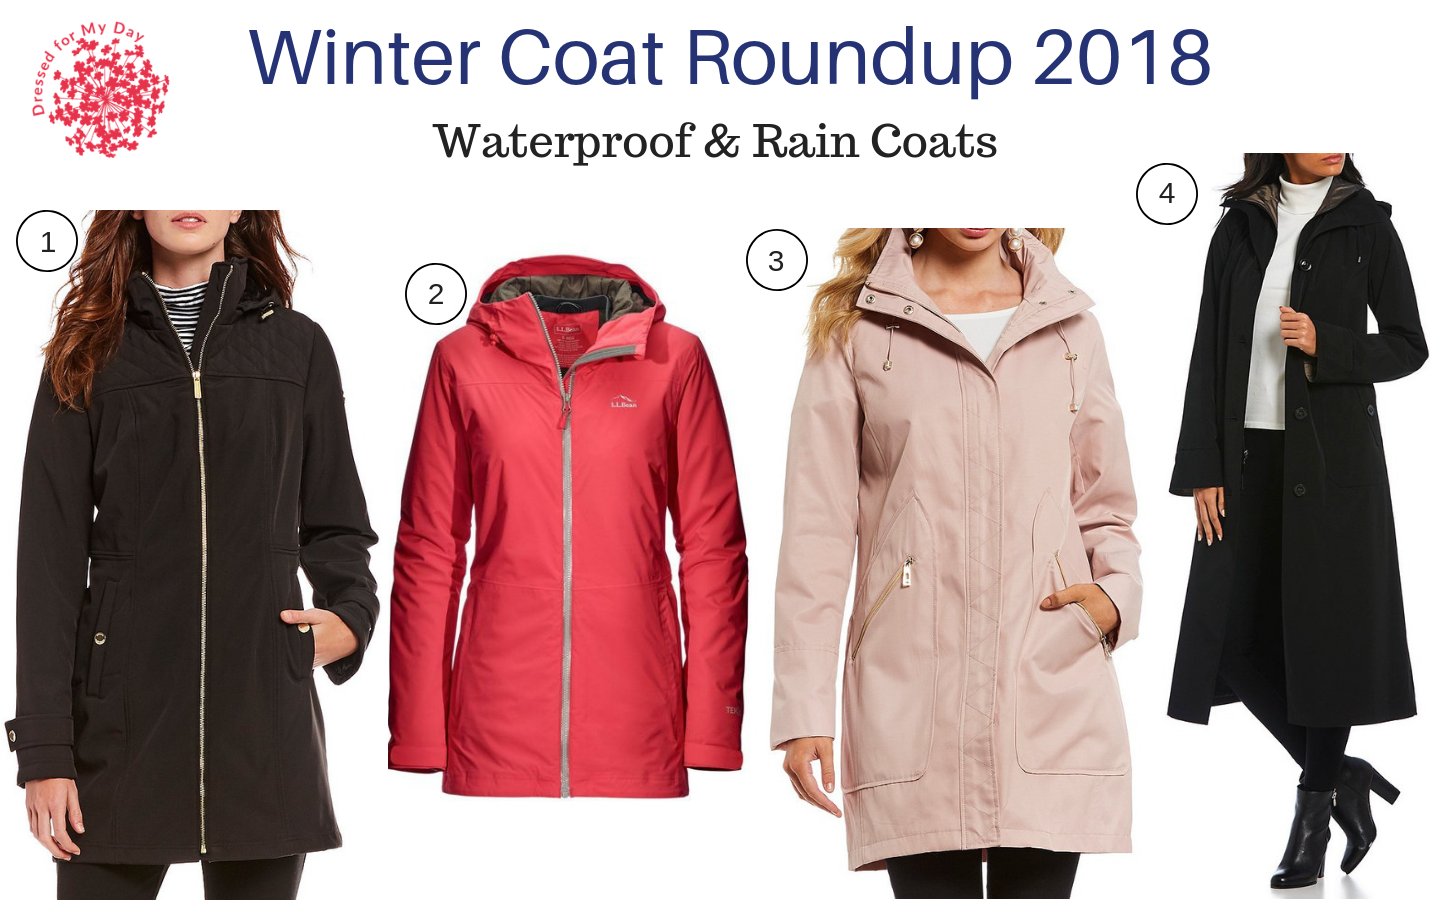 Winter Coat Roundup 2018 Waterproof and Rain Coats